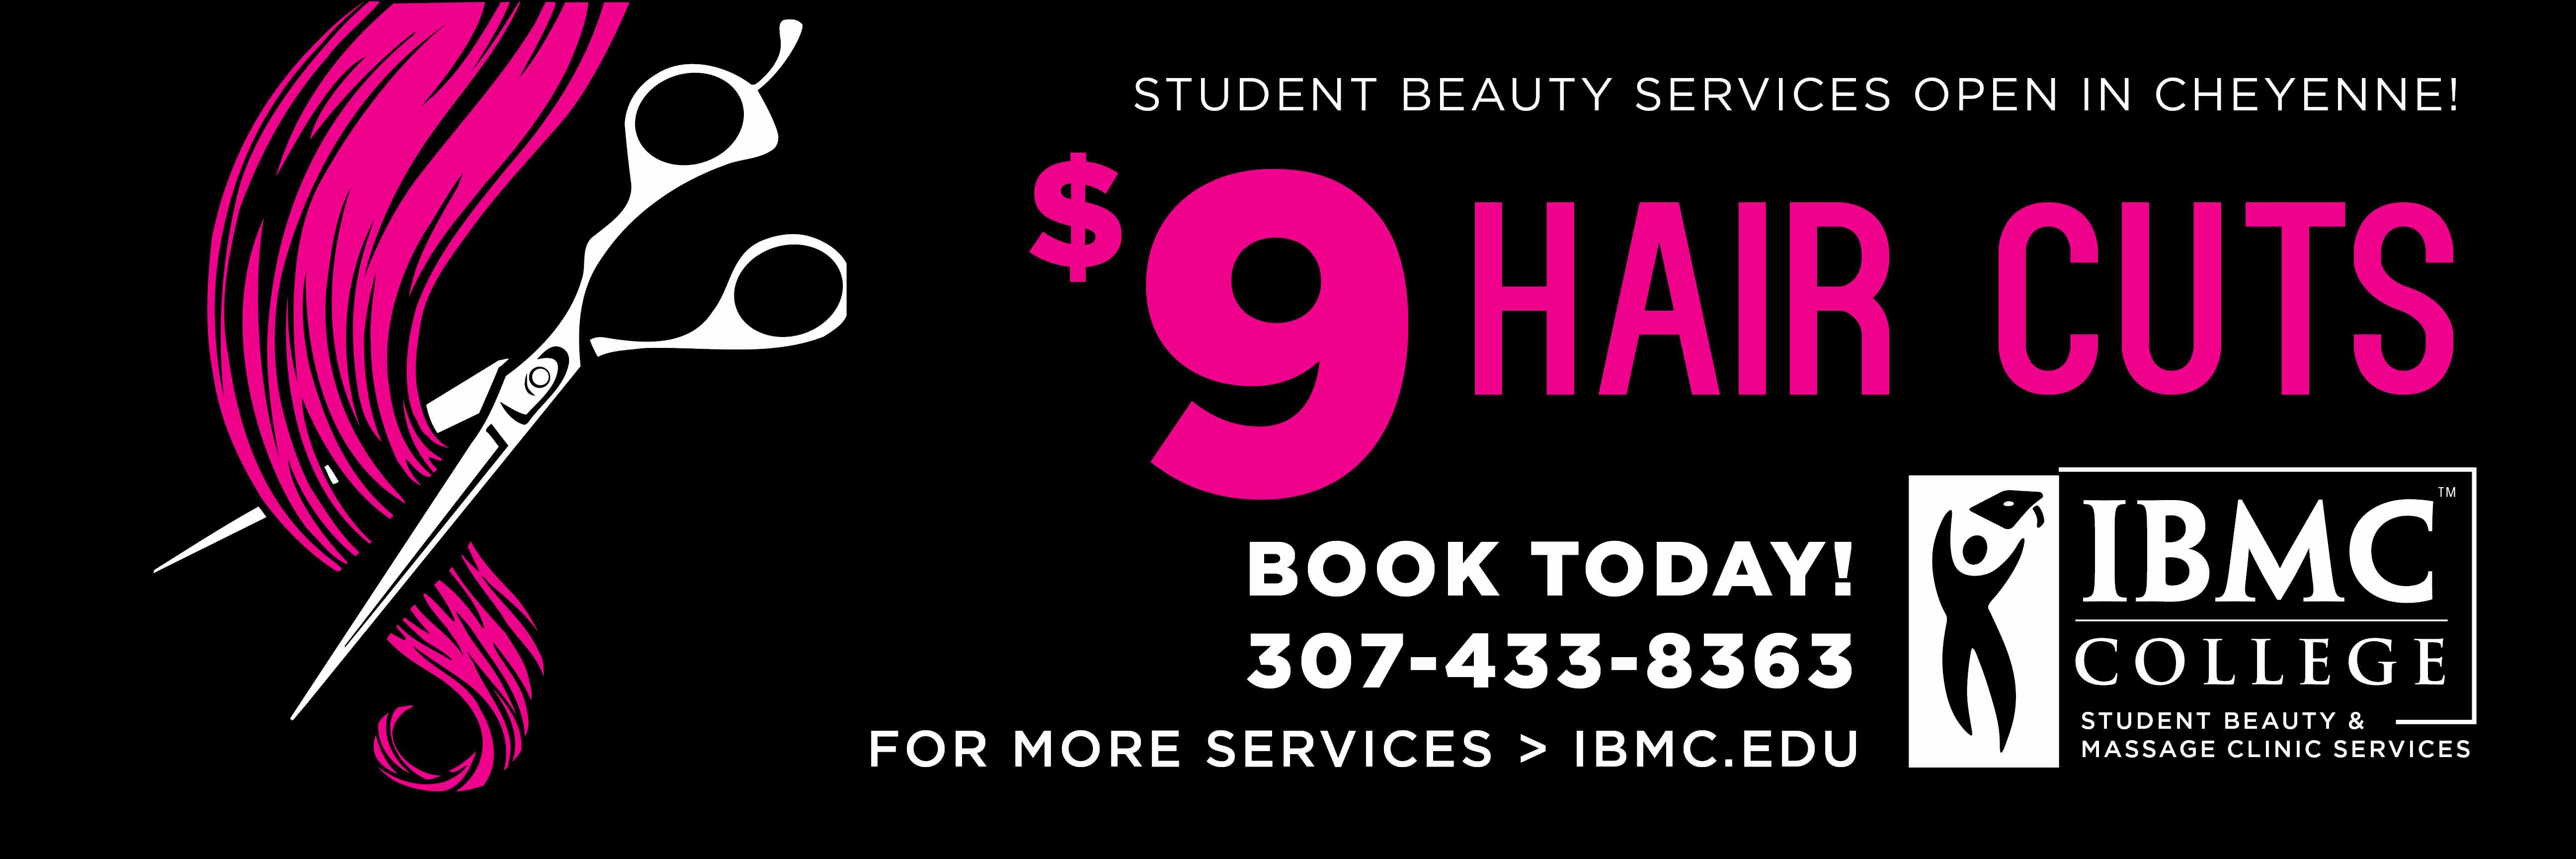 Ibmc Colleges Student Beauty Services Clinic Opens In Cheyenne On